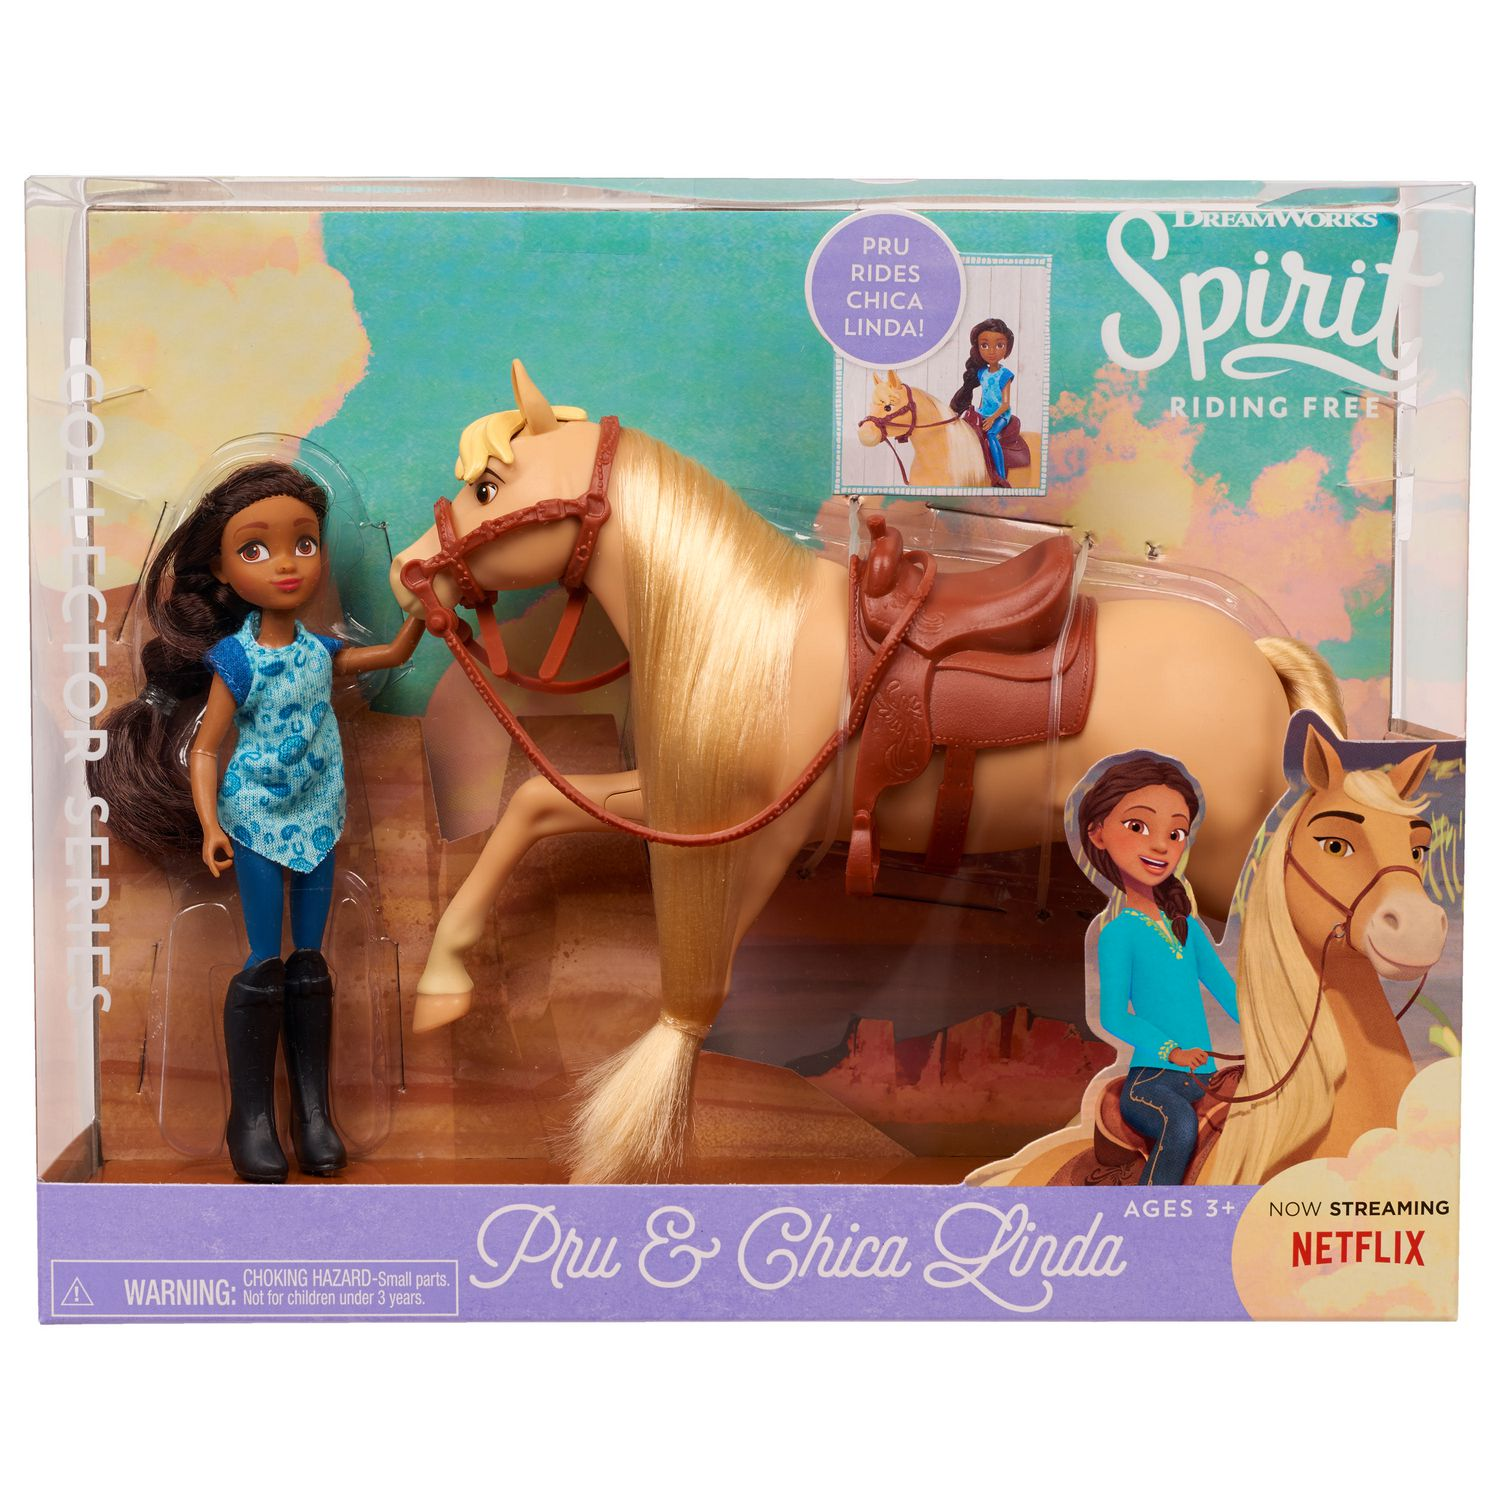 2bcddb20257 Spirit collector doll horse prudence chica linda walmart canada jpg  1500x1500 Chica linda spirit